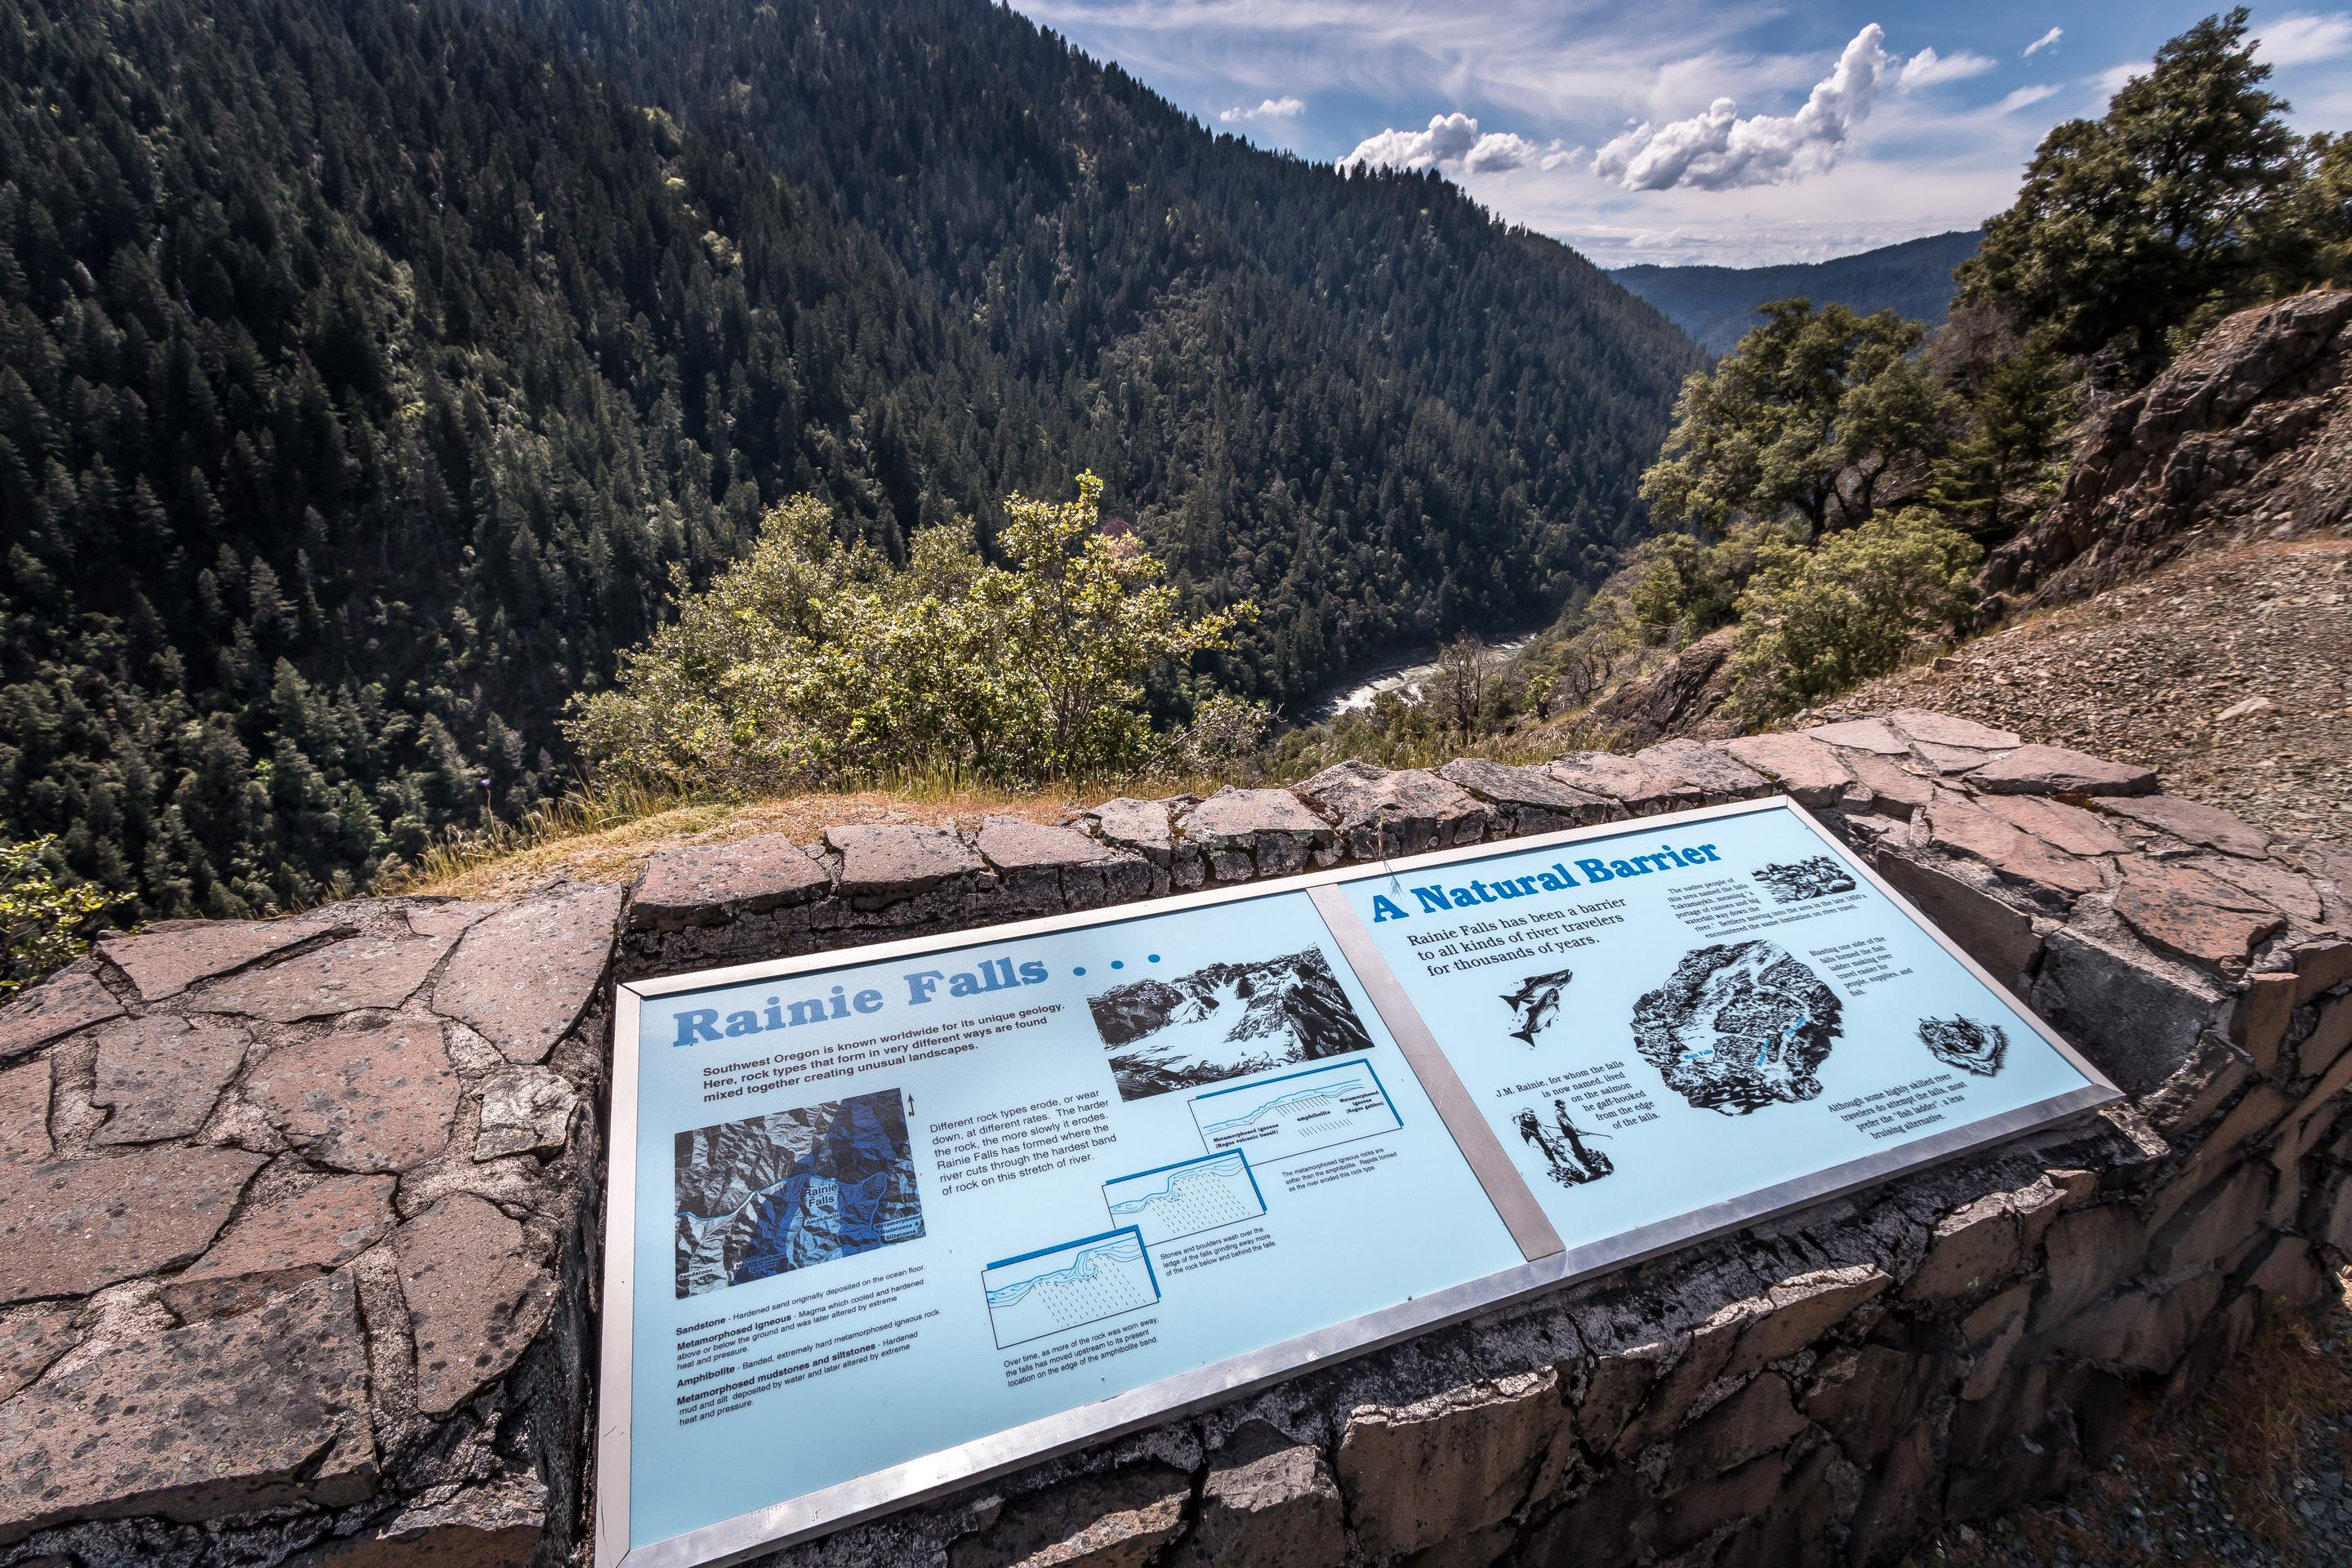 Interpretive panels at Rainie Falls Overlook